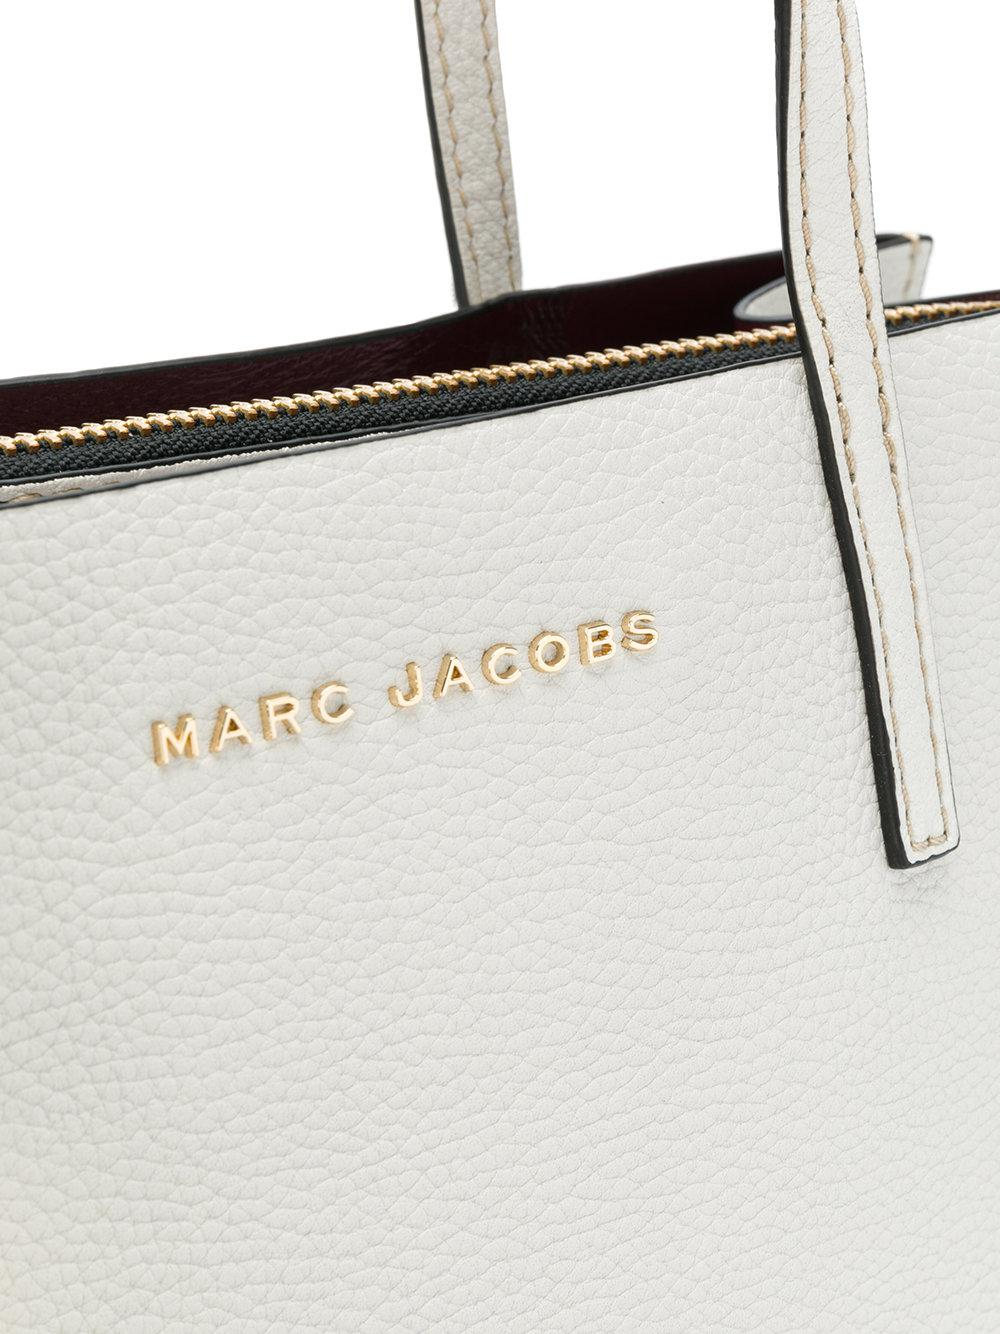 Marc Jacobs Leather The Grind Shopper Tote in White